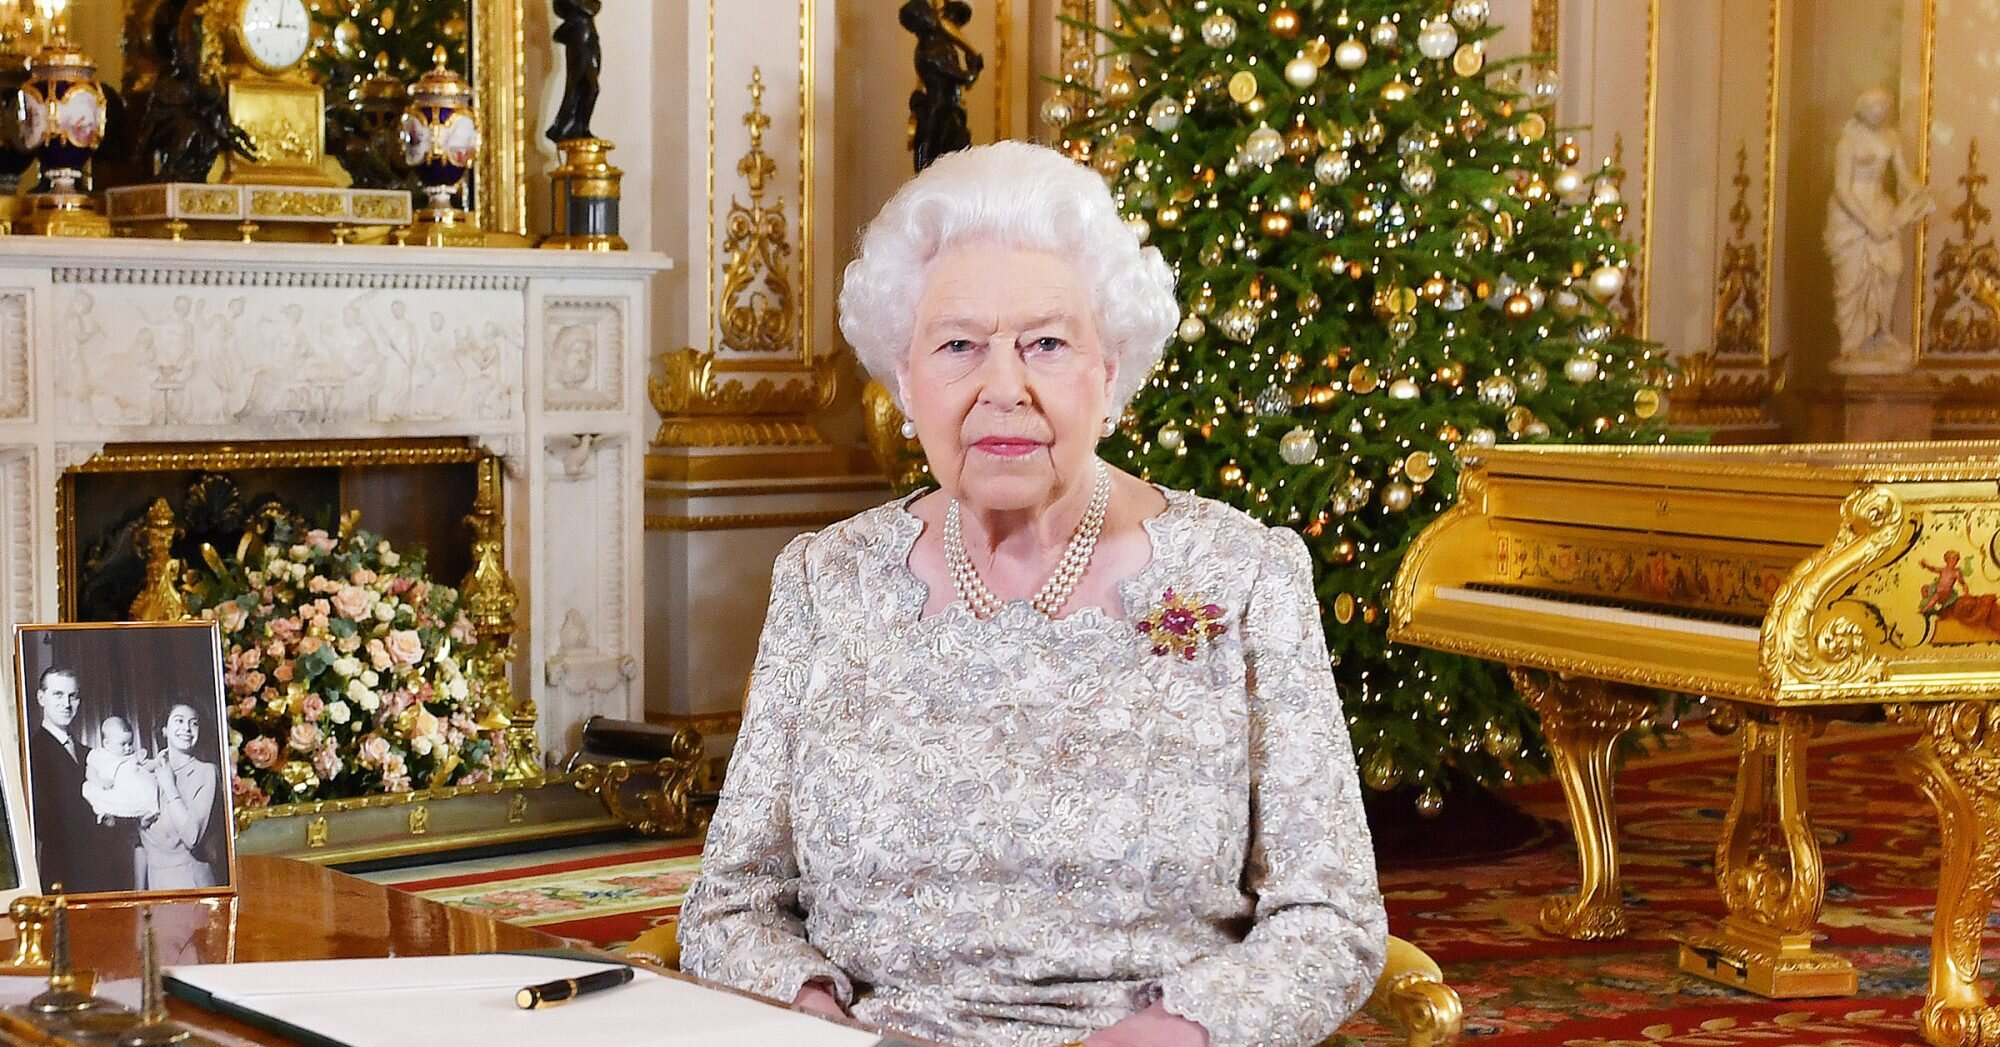 Queen Elizabeth Is 'Accepting' That Christmas Will Be Without Usual Family Festivities This Year